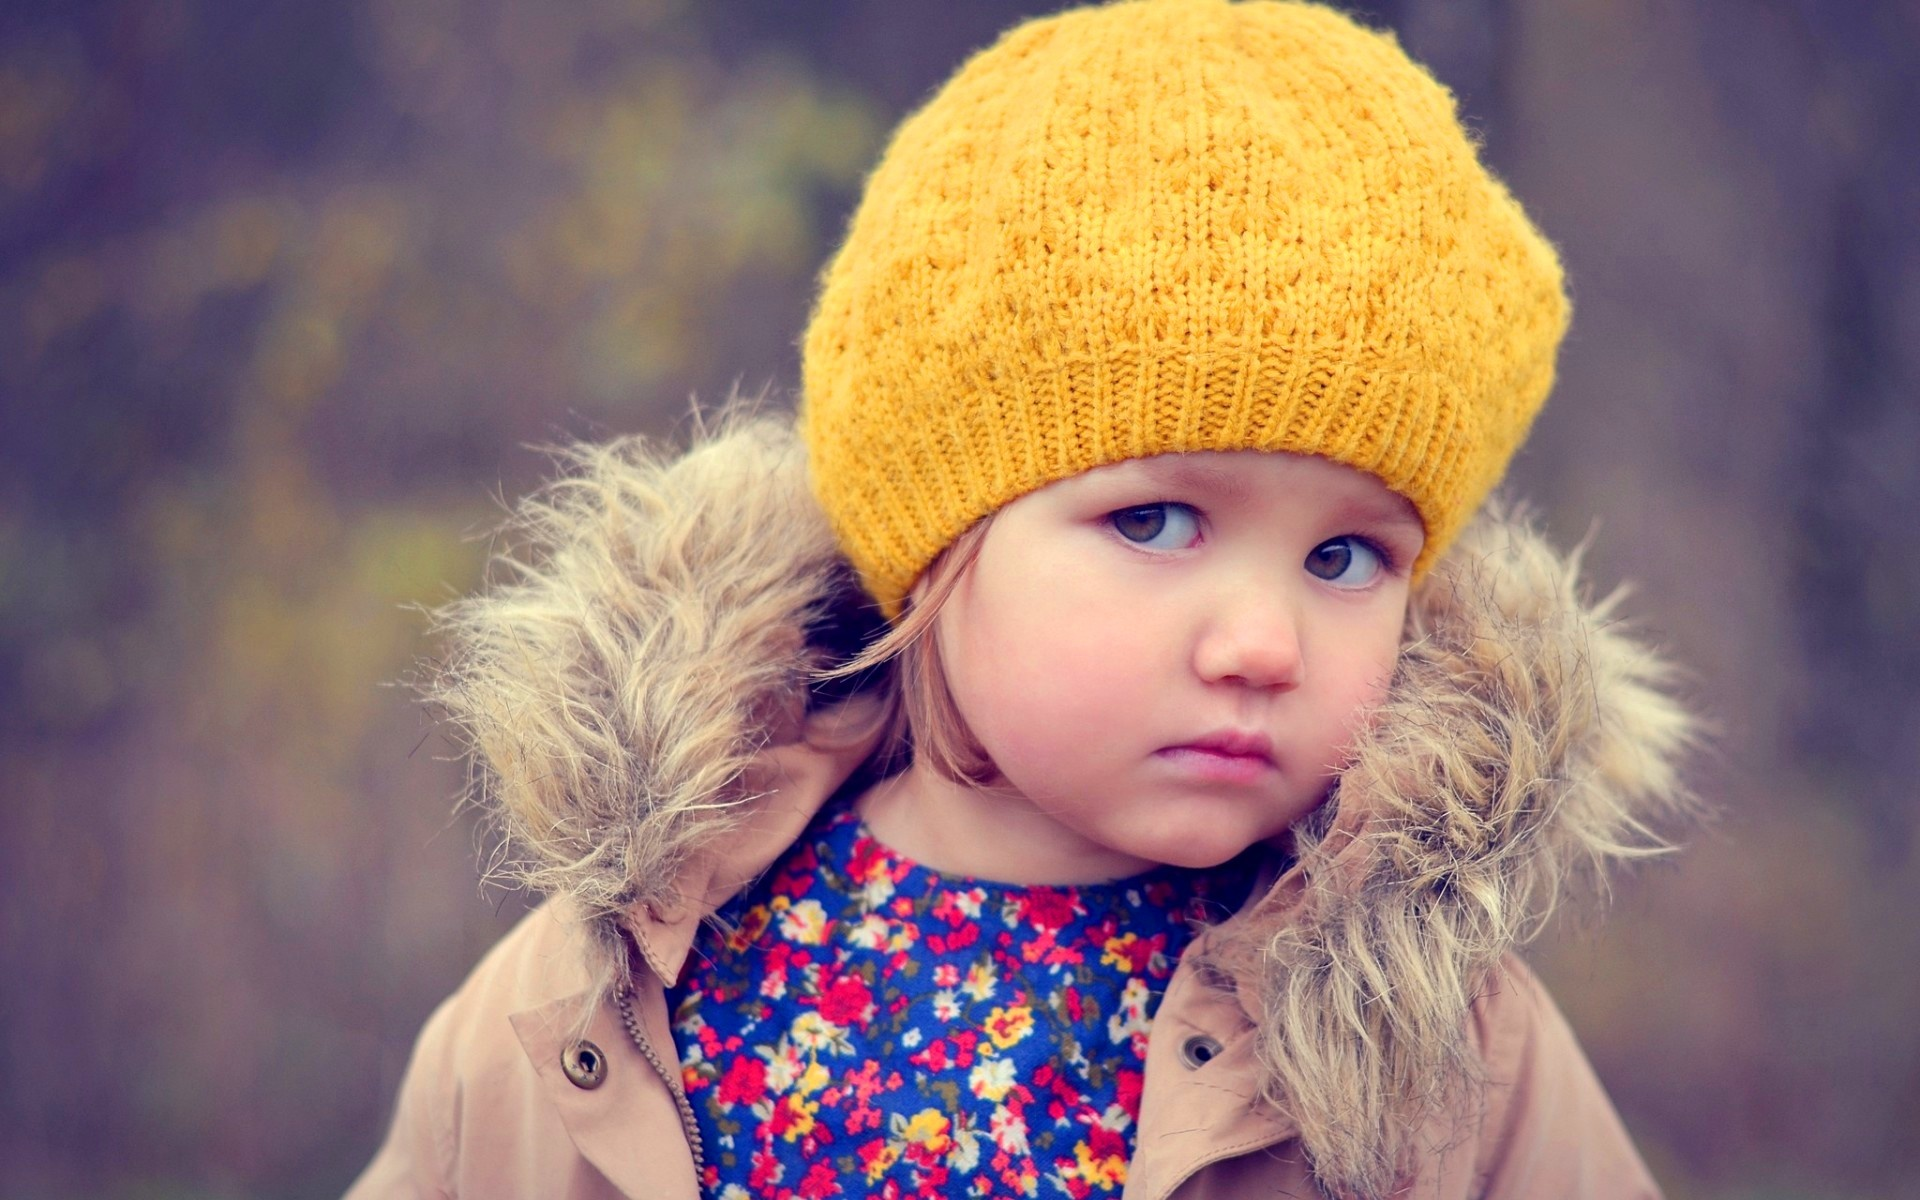 Angry-Cute-Baby-Girl-photos-Images-wallpapers